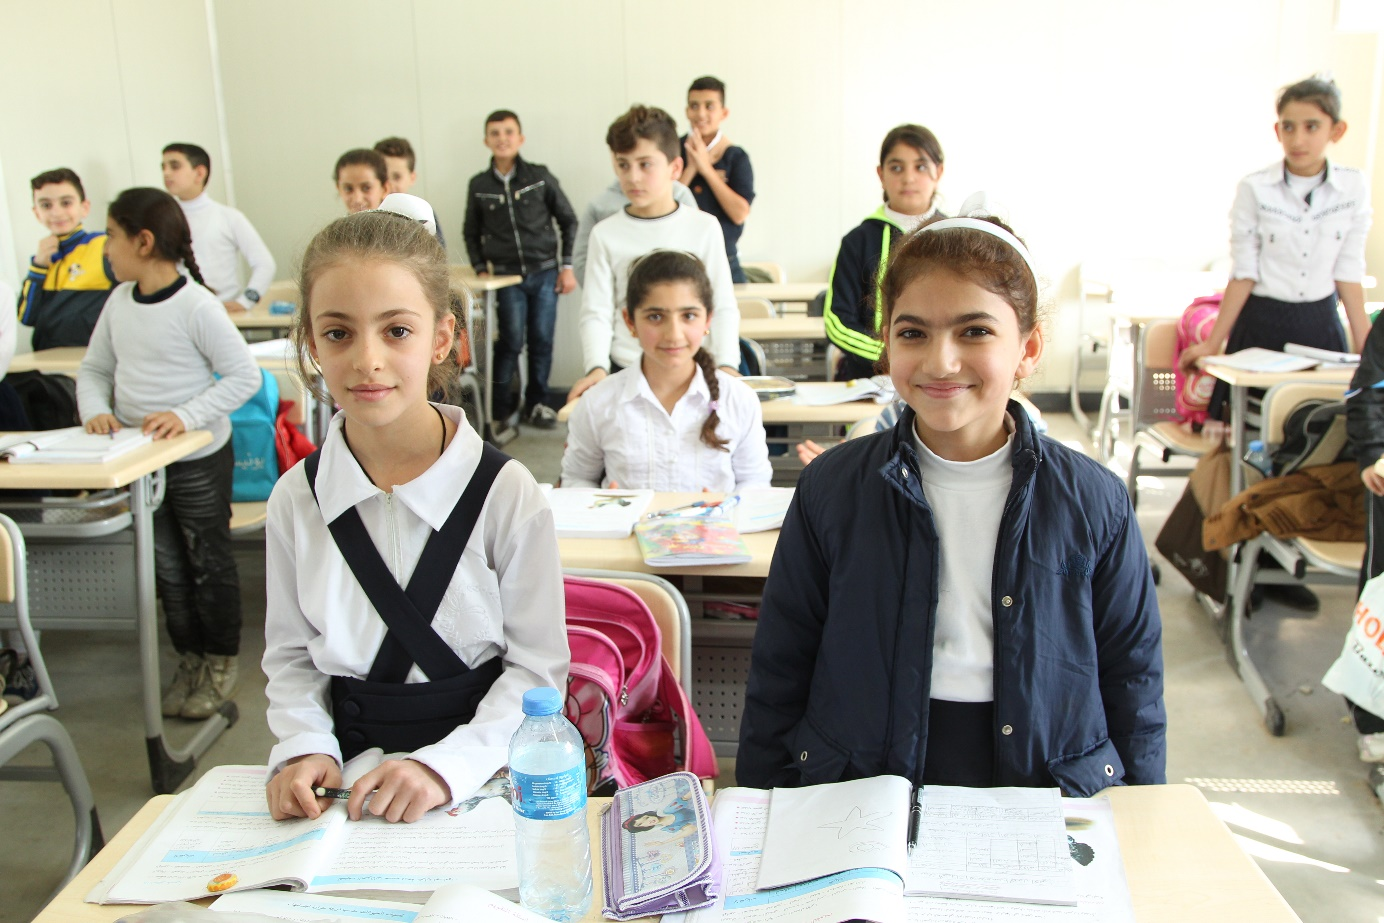 Separated by the flight from ISIS, friends Myriam and Sandra are reunited at a school in Erbil.